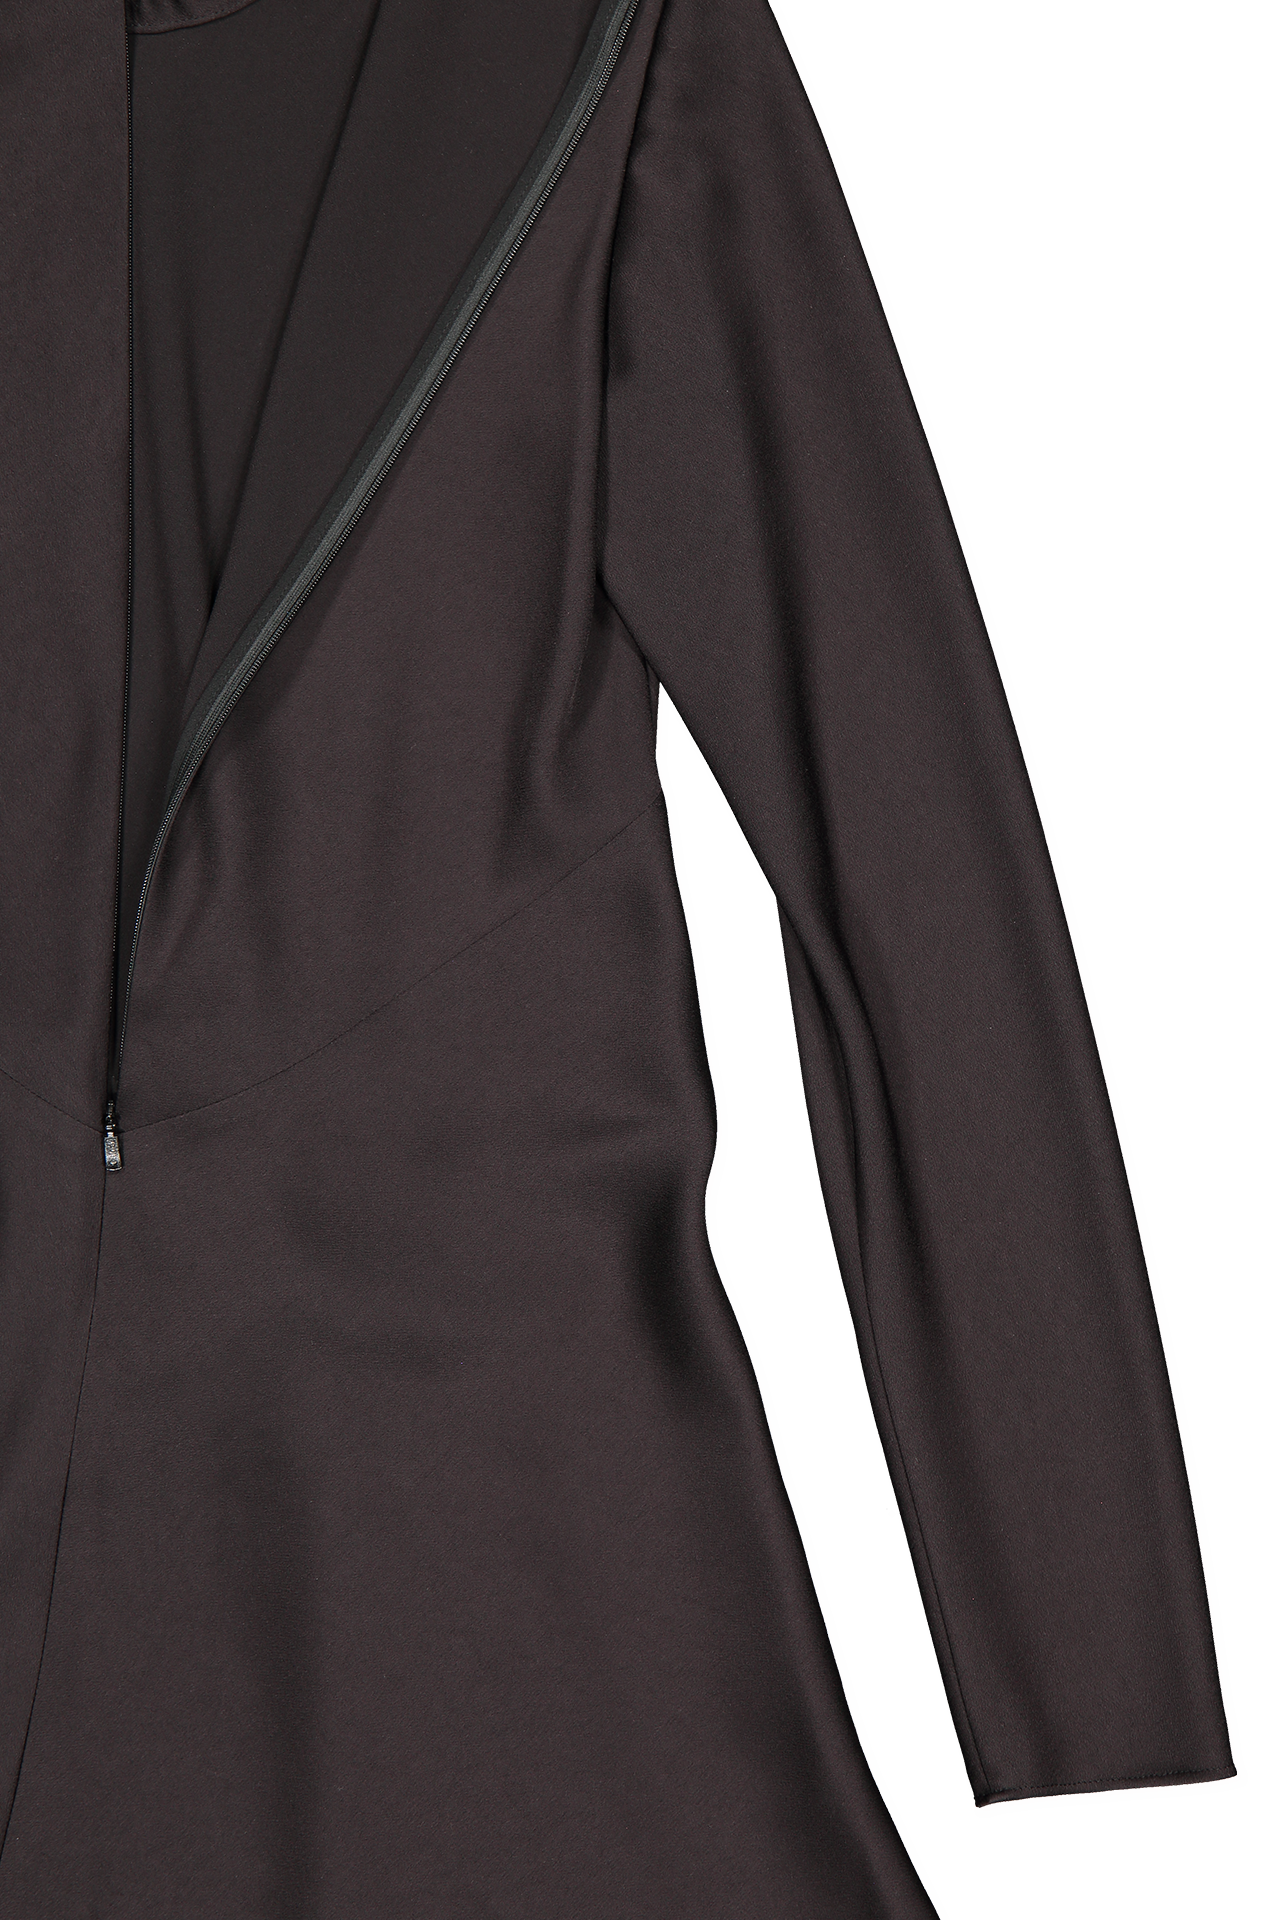 Sleeve detail image of Chloé Long Sleeve Ruched Dress